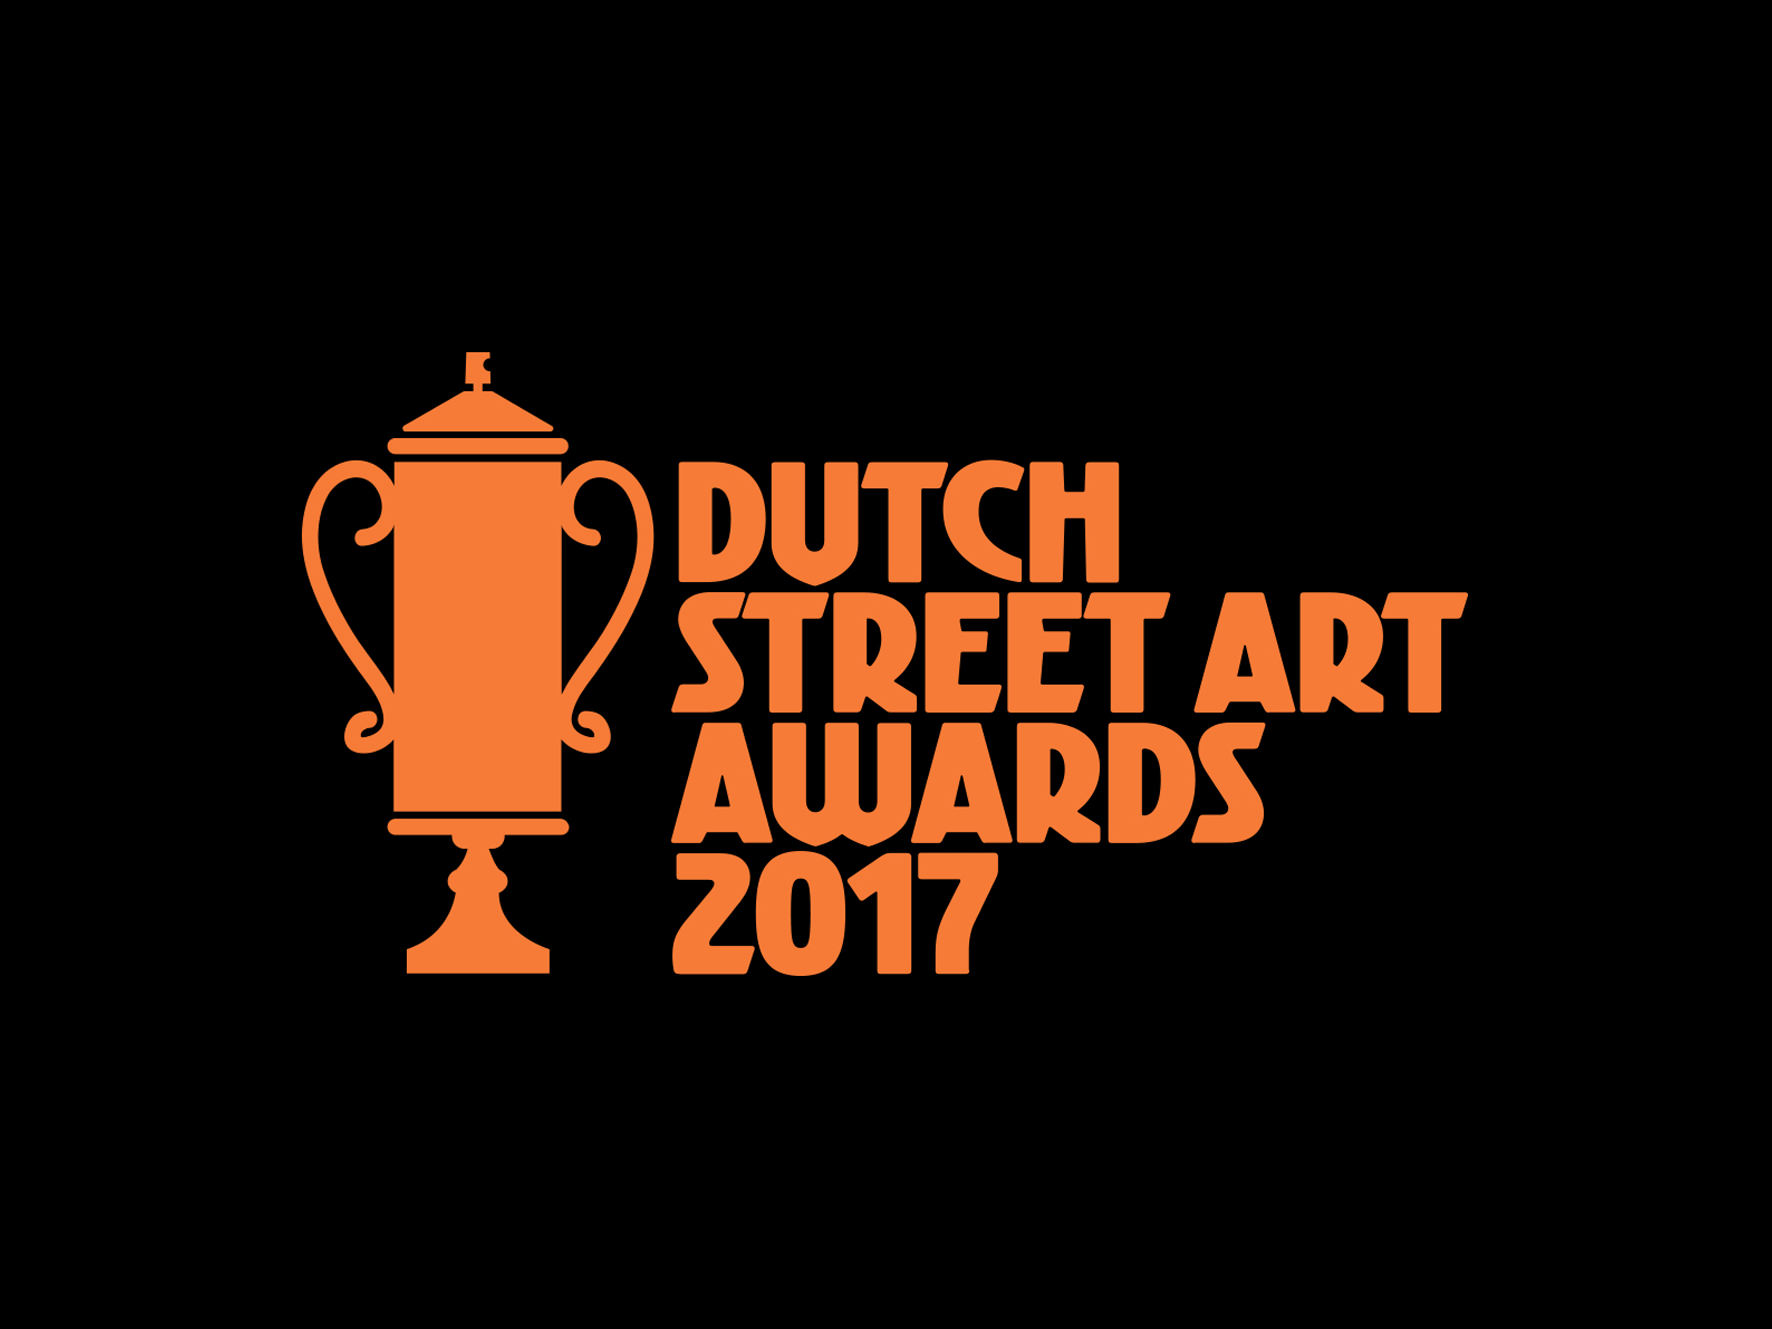 Dutch Street Art Awards 2017